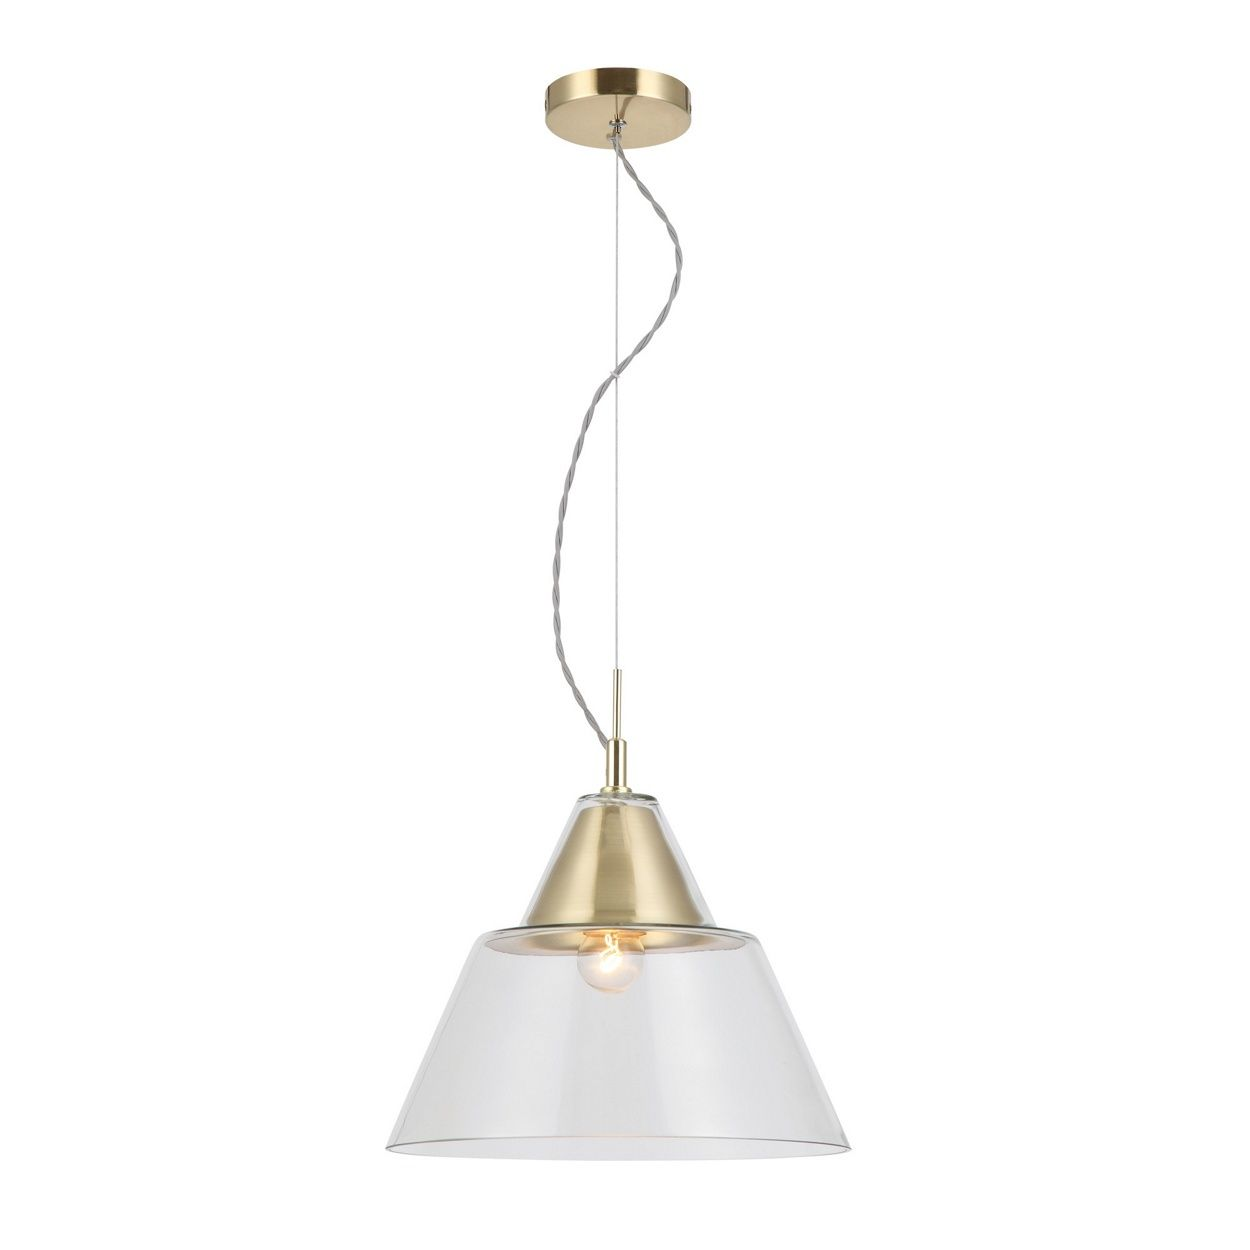 Simple And Elegant, This Ceiling Light Will Bring A Modern